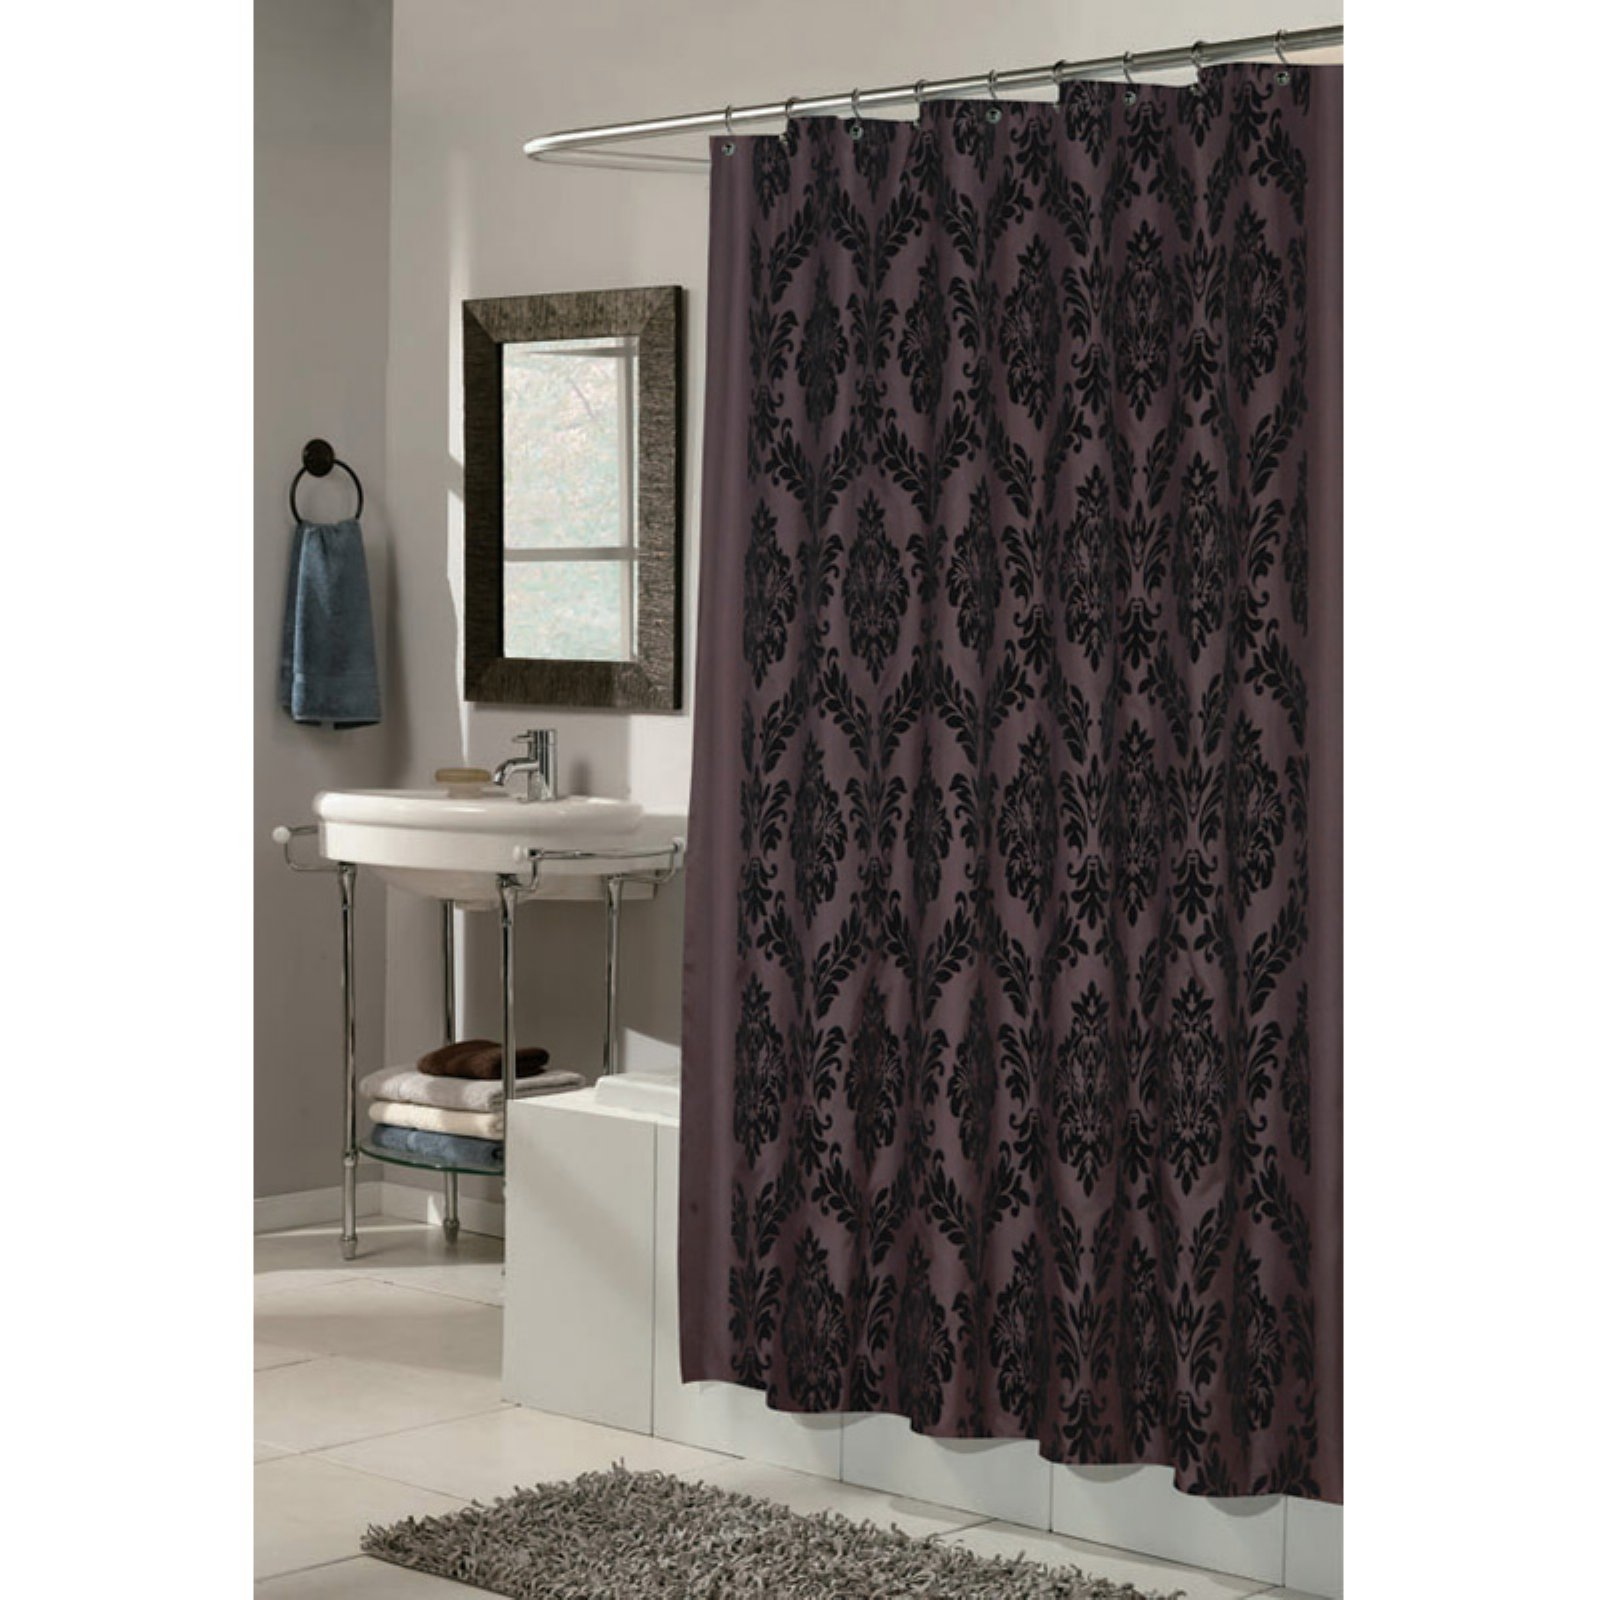 Carnation Home Fashions Regal Damask Fabric Shower Curtain